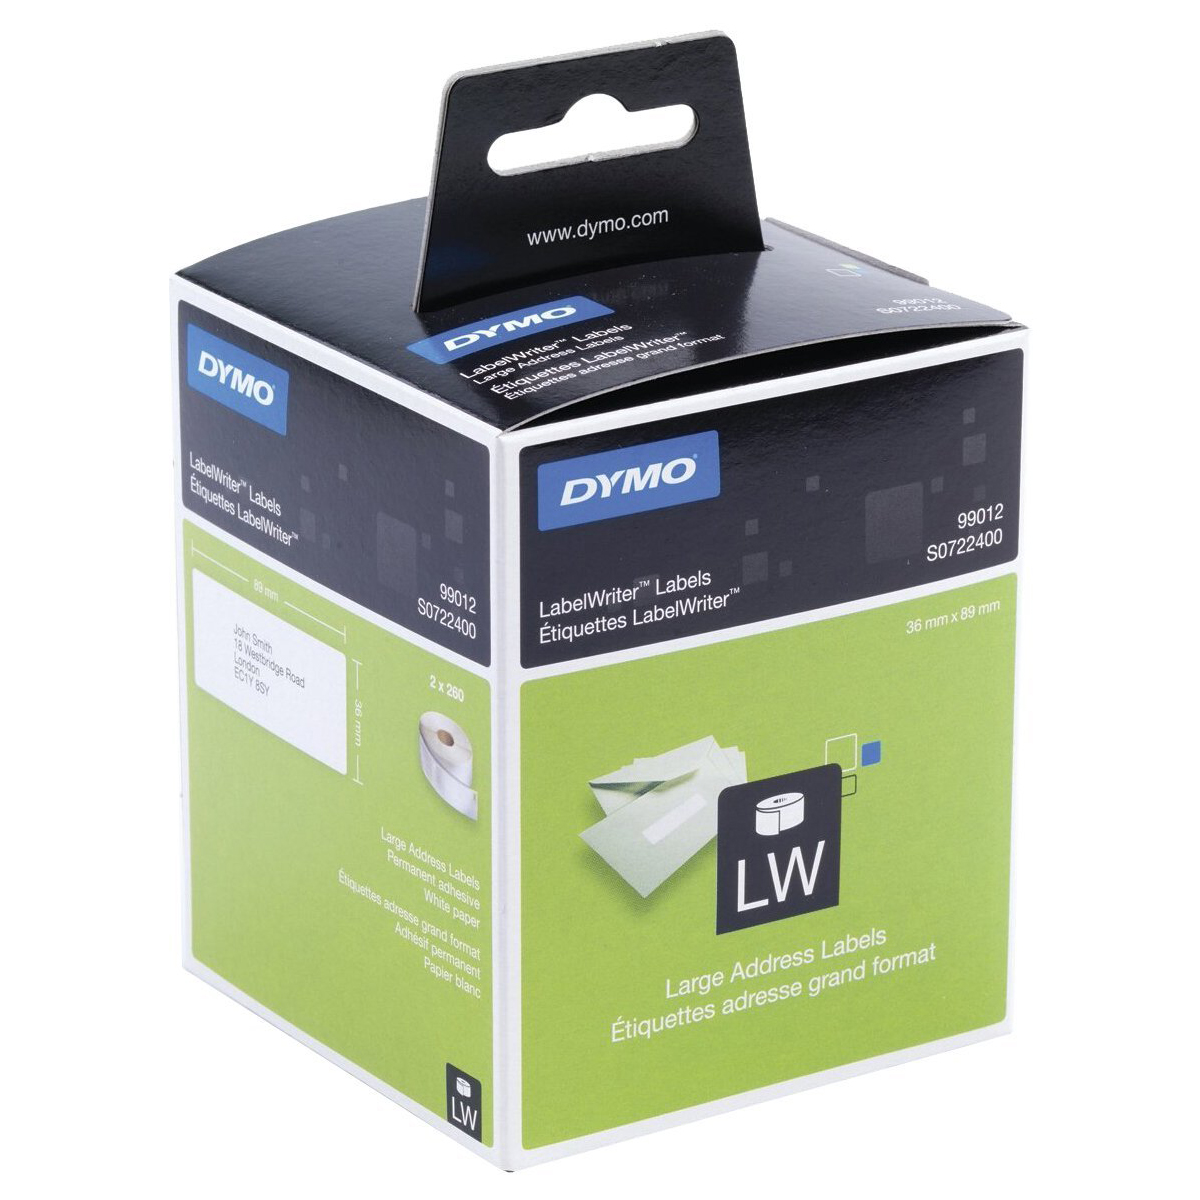 Dymo S0722400 Large Address LW Labels Black on White 89mm x 36mm - 260 Labels/Roll (pkt/2pcs)